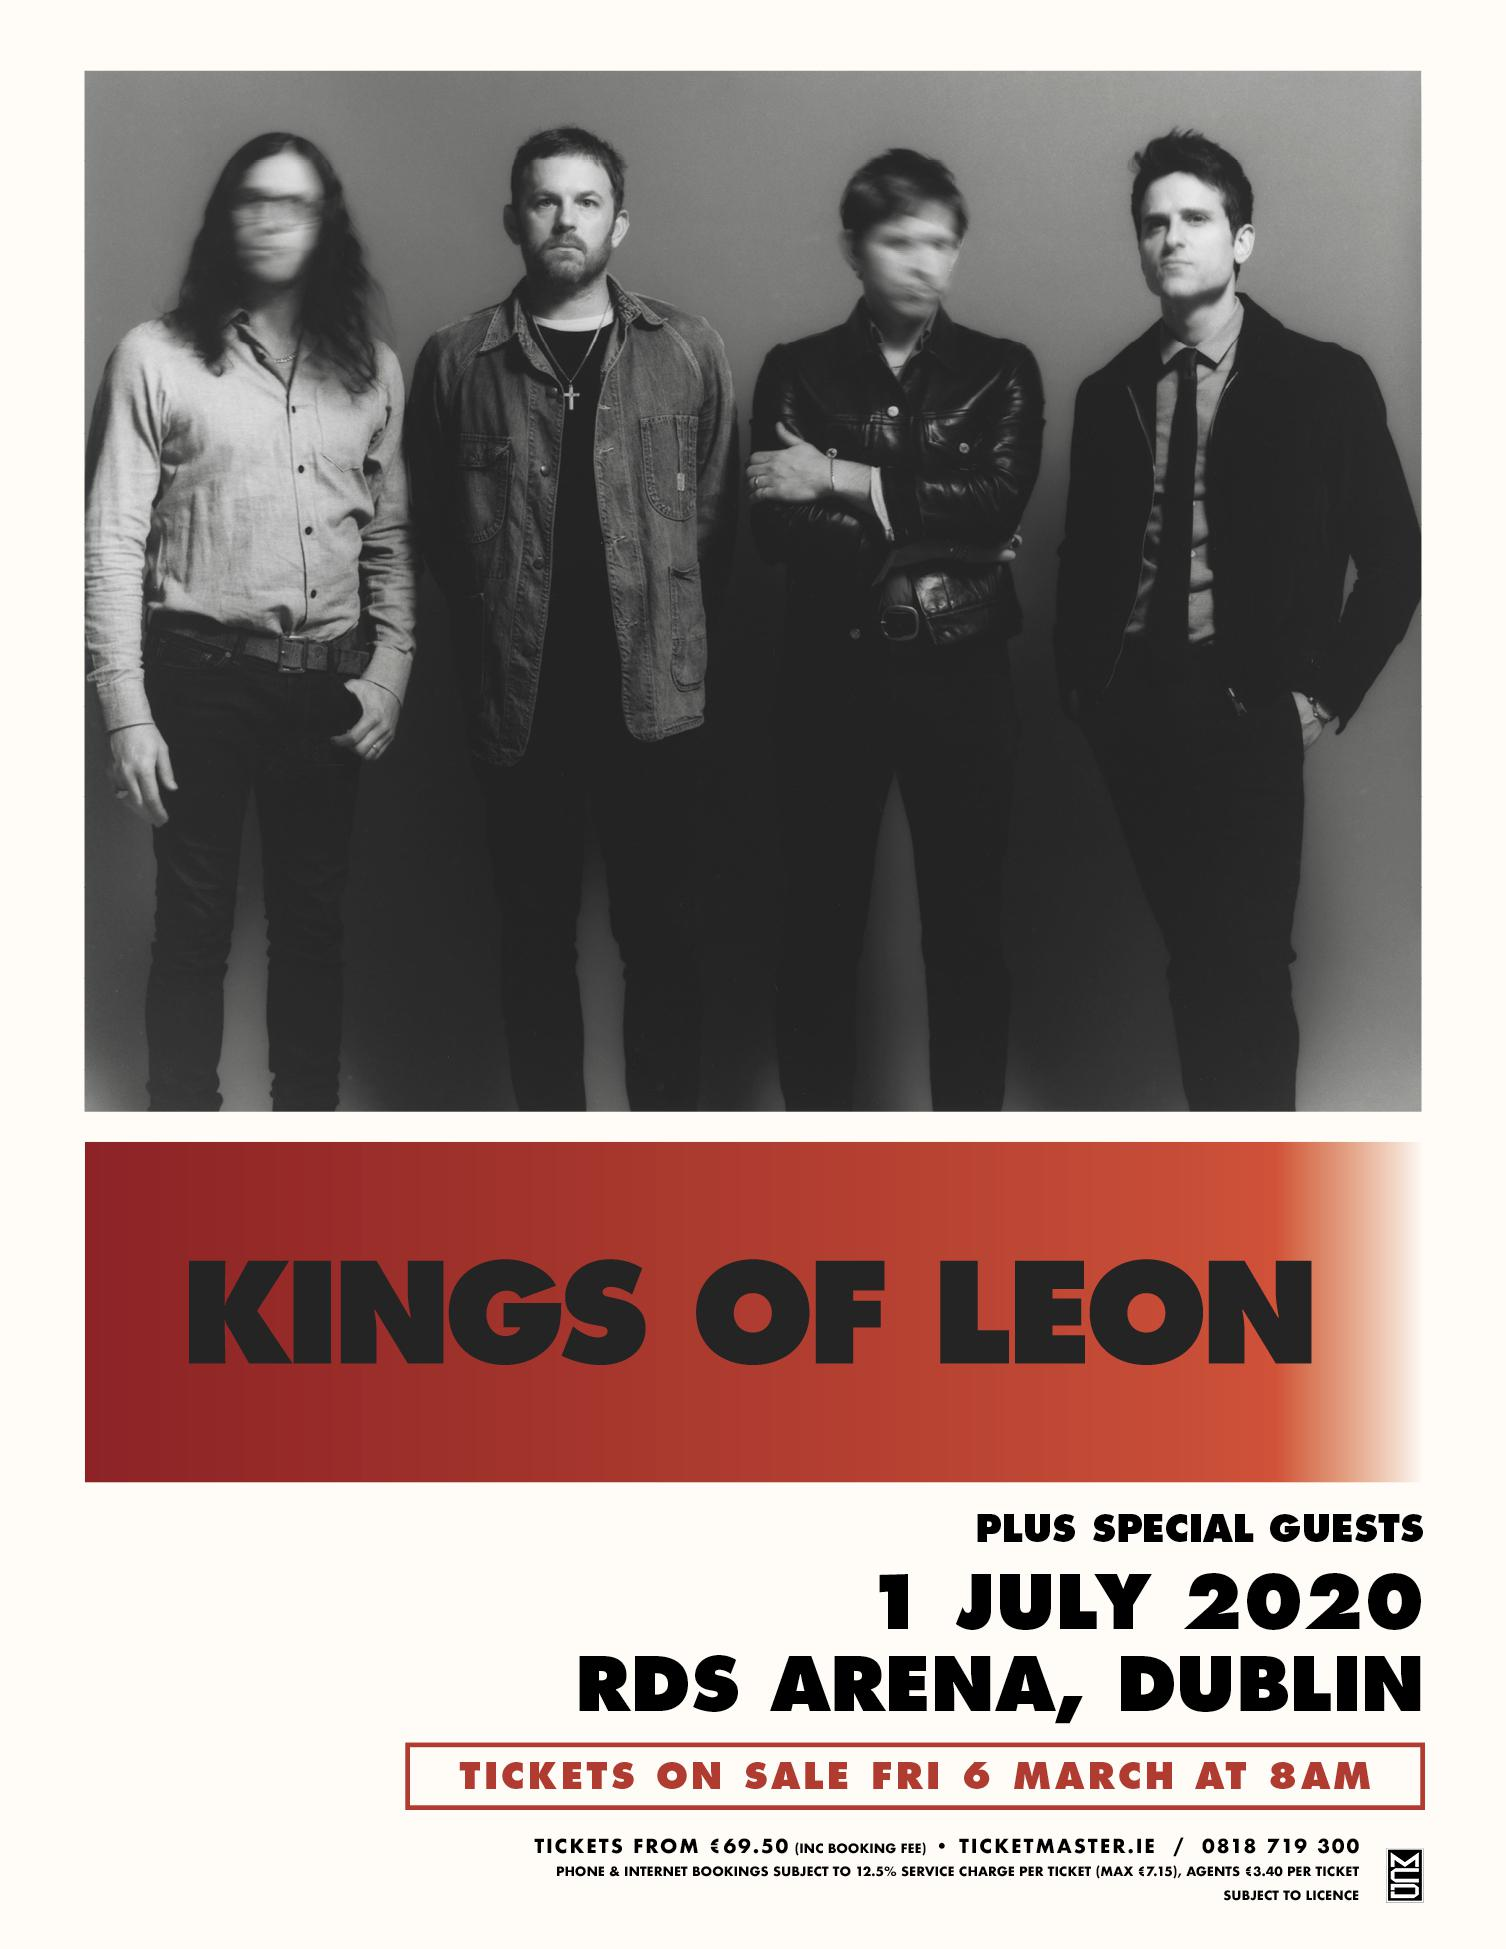 The poster for the Kings of Leon gig at the RDS